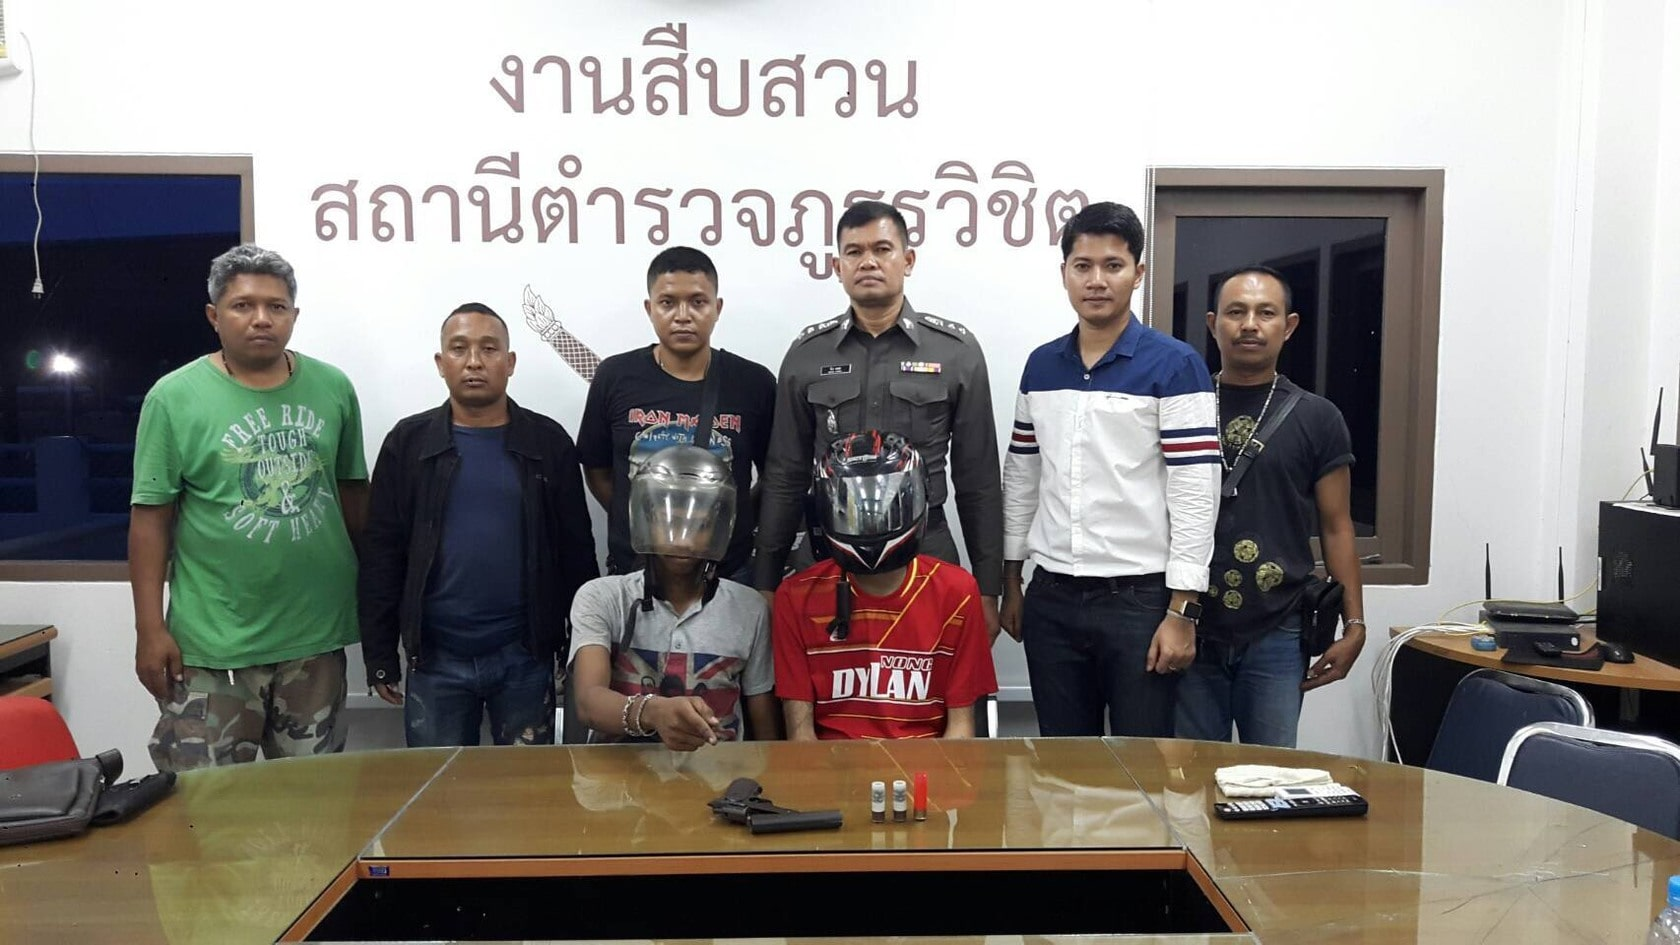 Two arrested over shots in the air – Wichit | The Thaiger